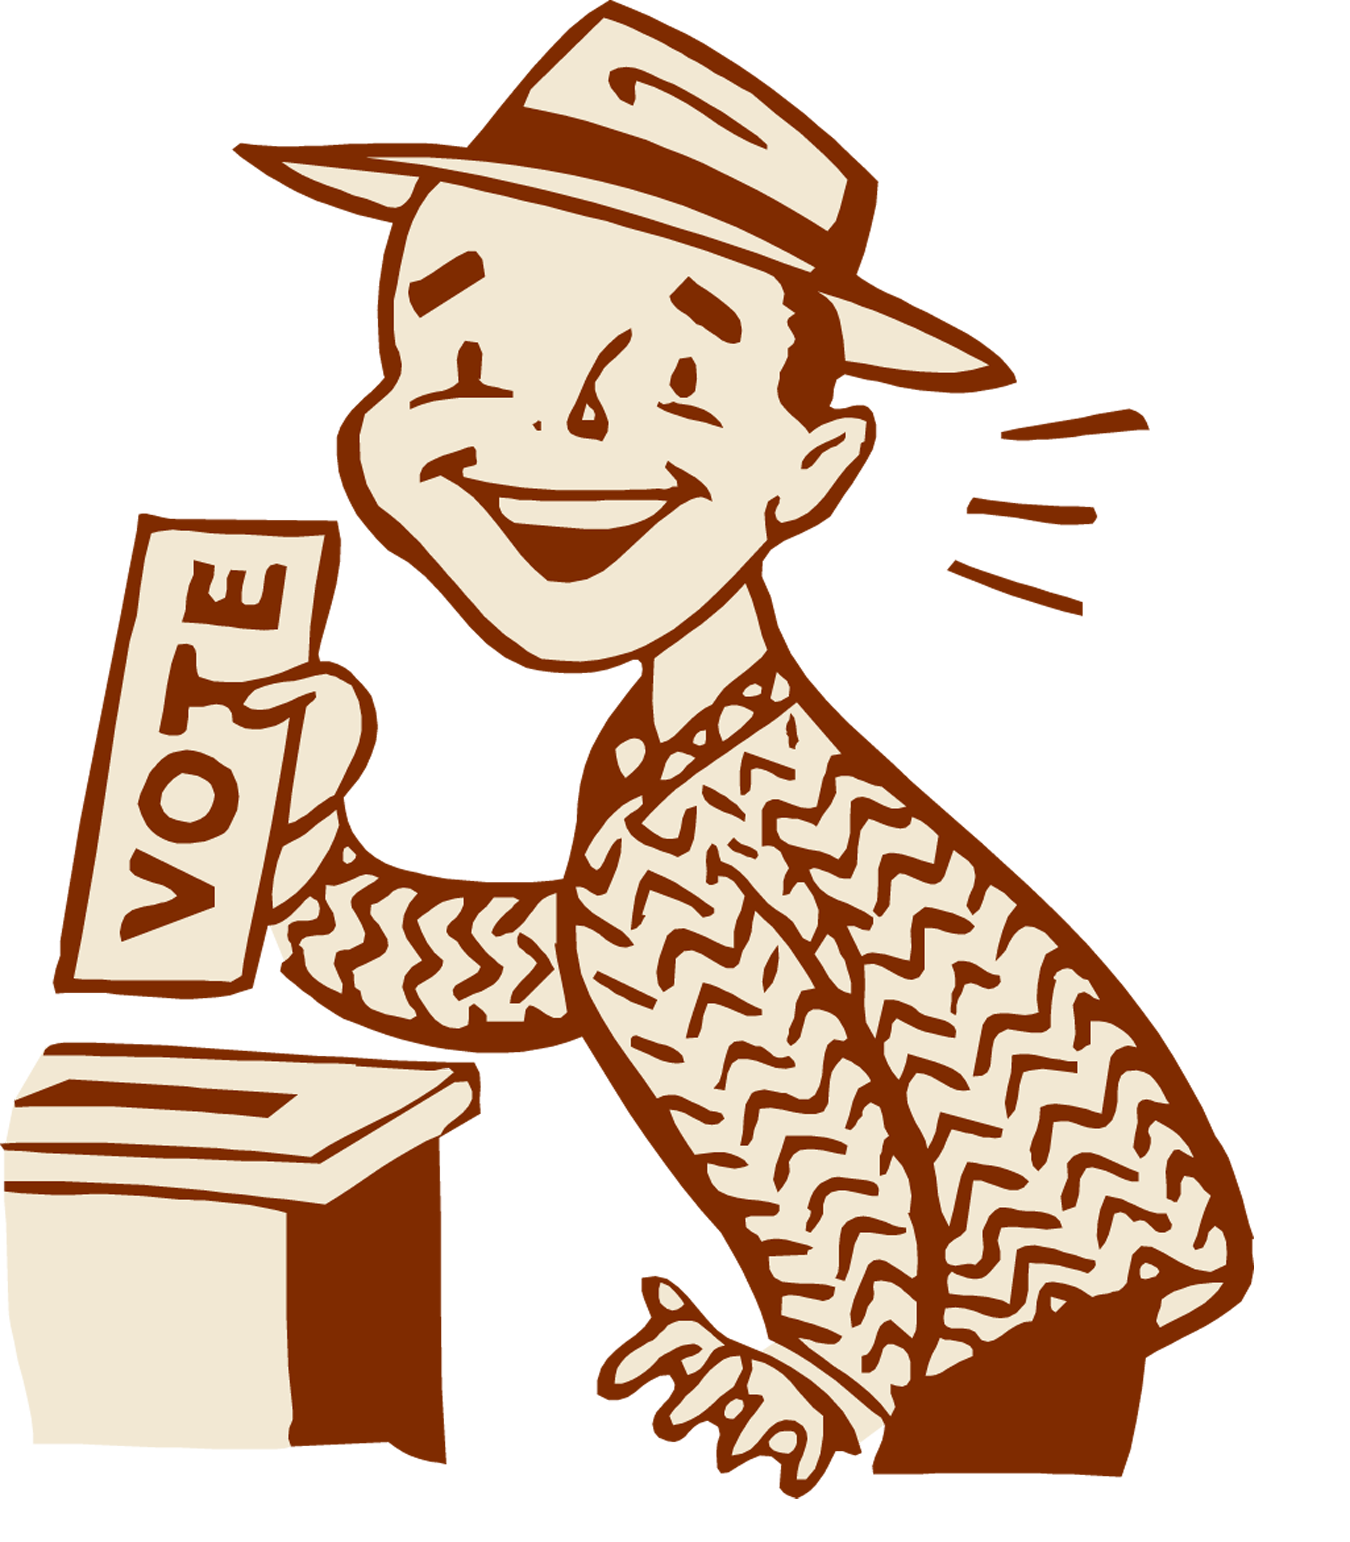 Be sure to vote. Democracy clipart school election